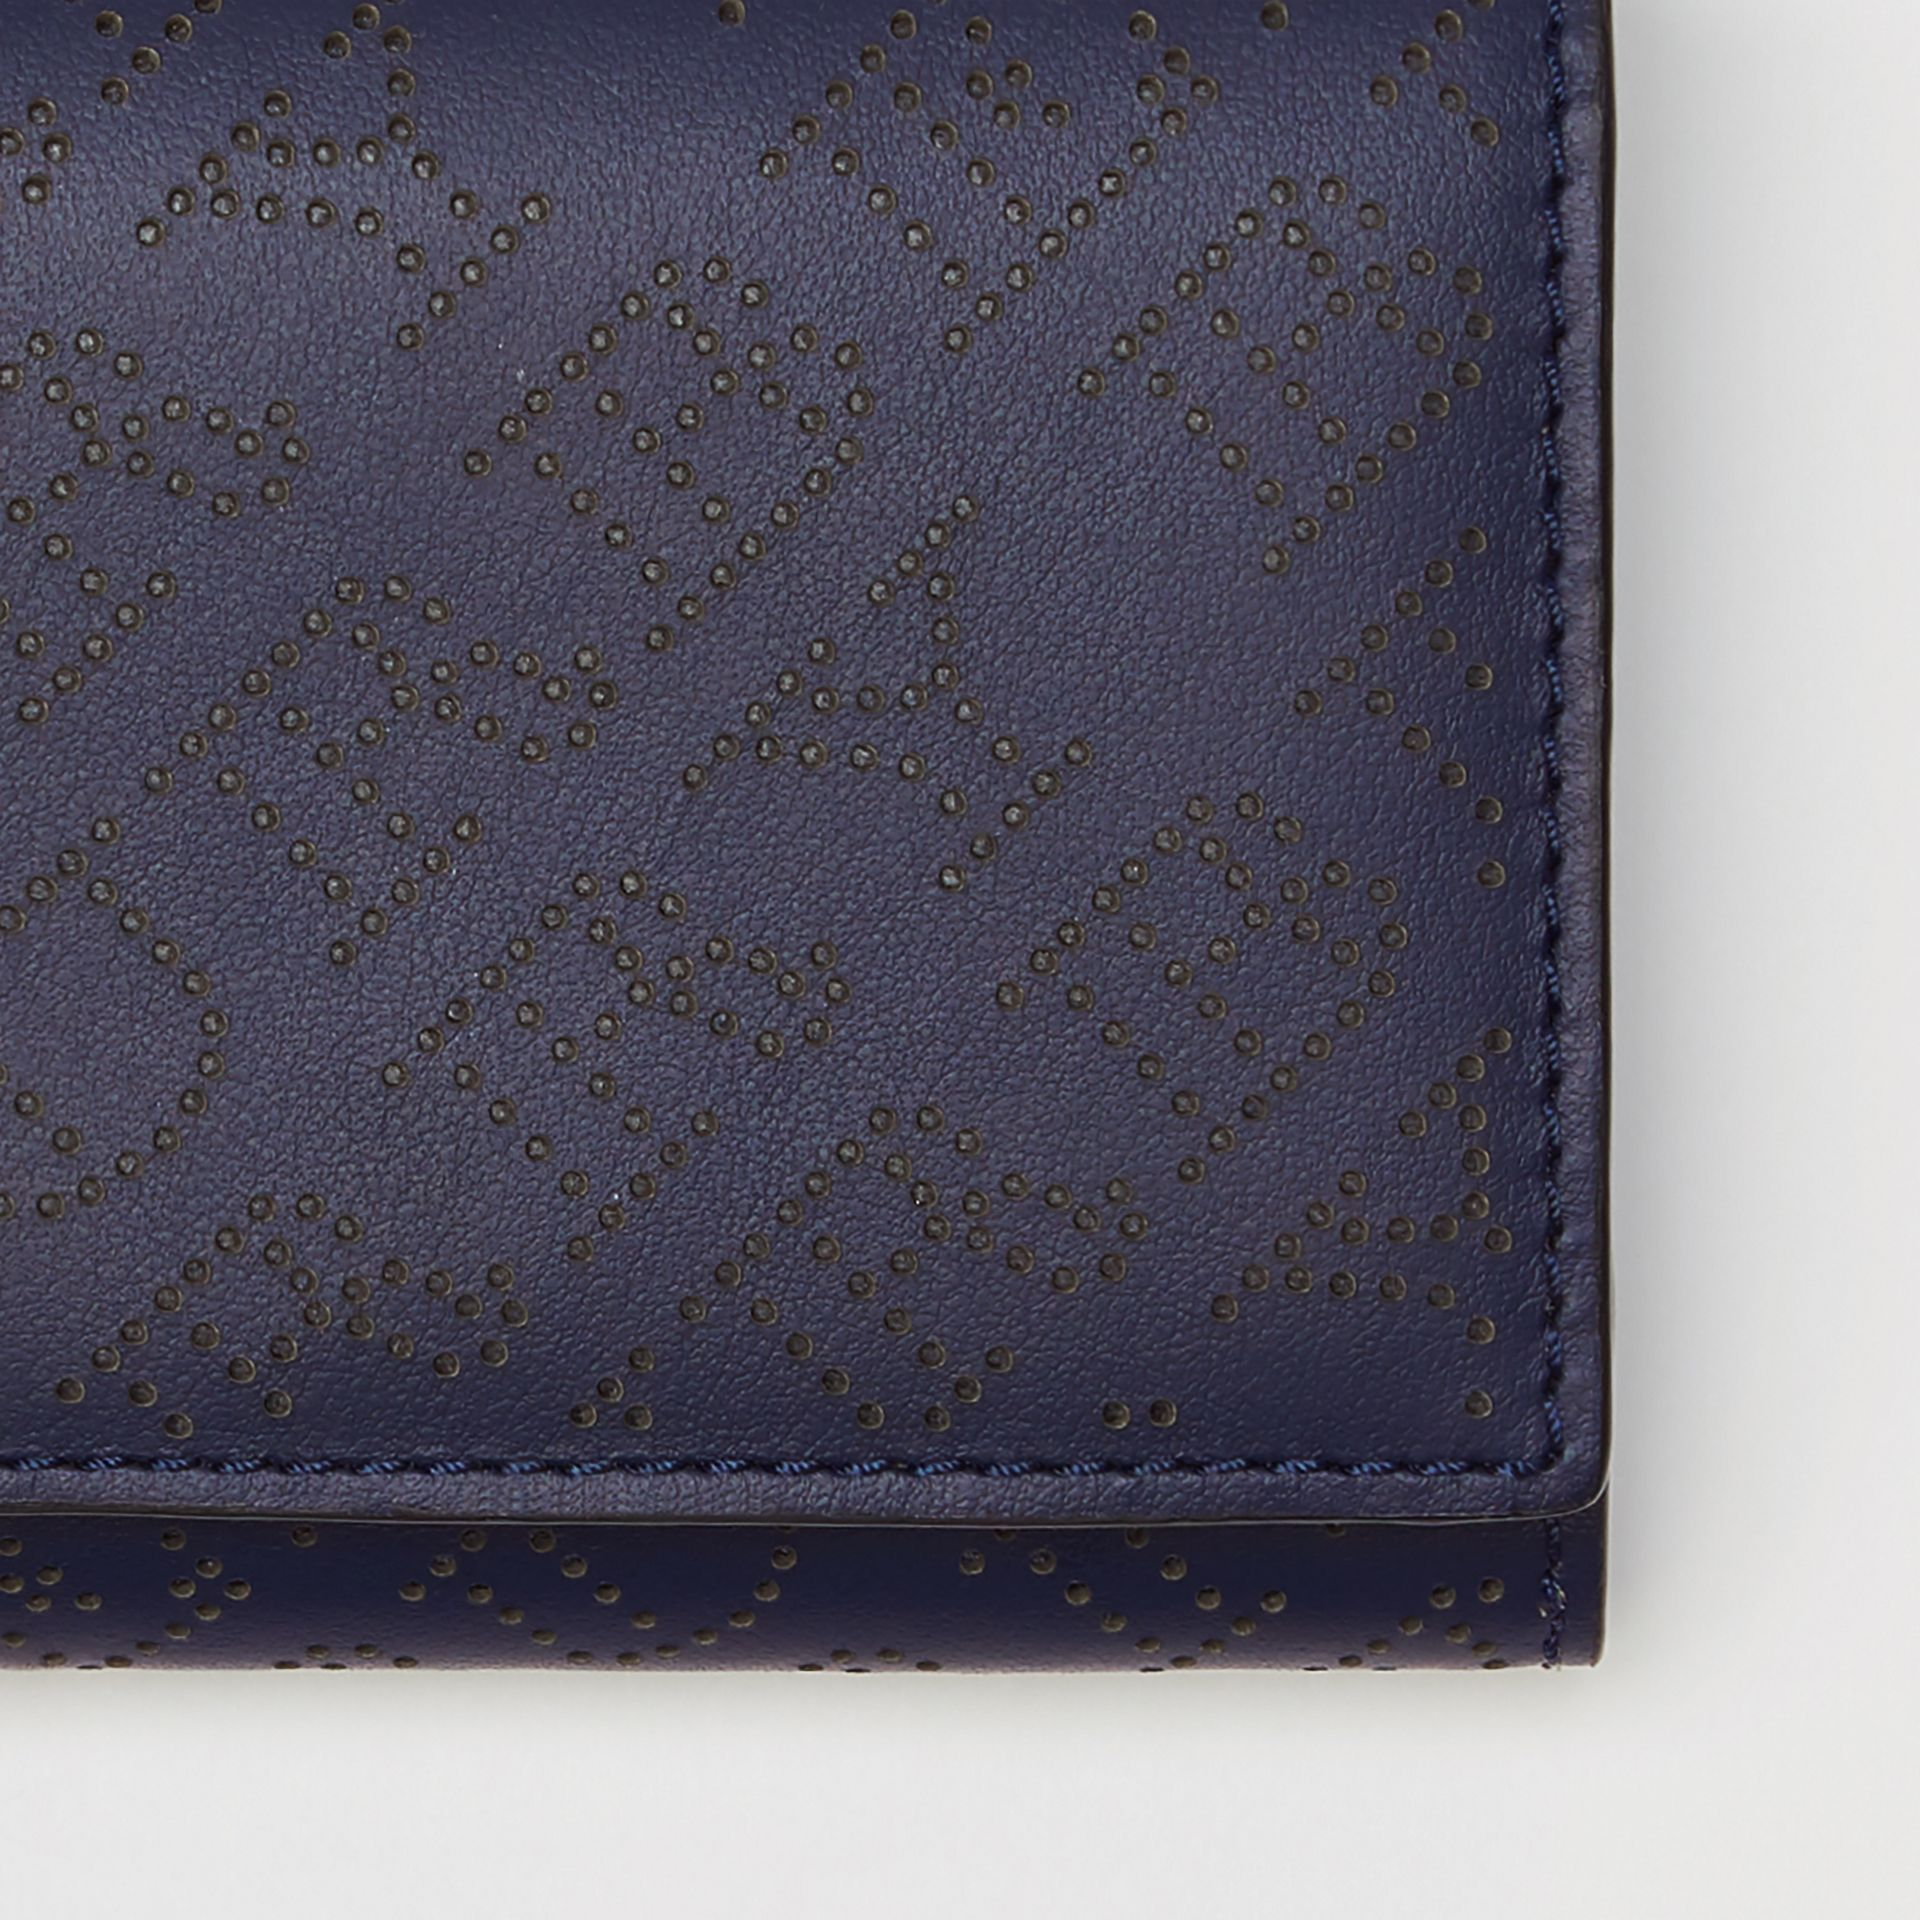 Small Perforated Logo Leather Wallet in Navy - Women | Burberry - gallery image 1